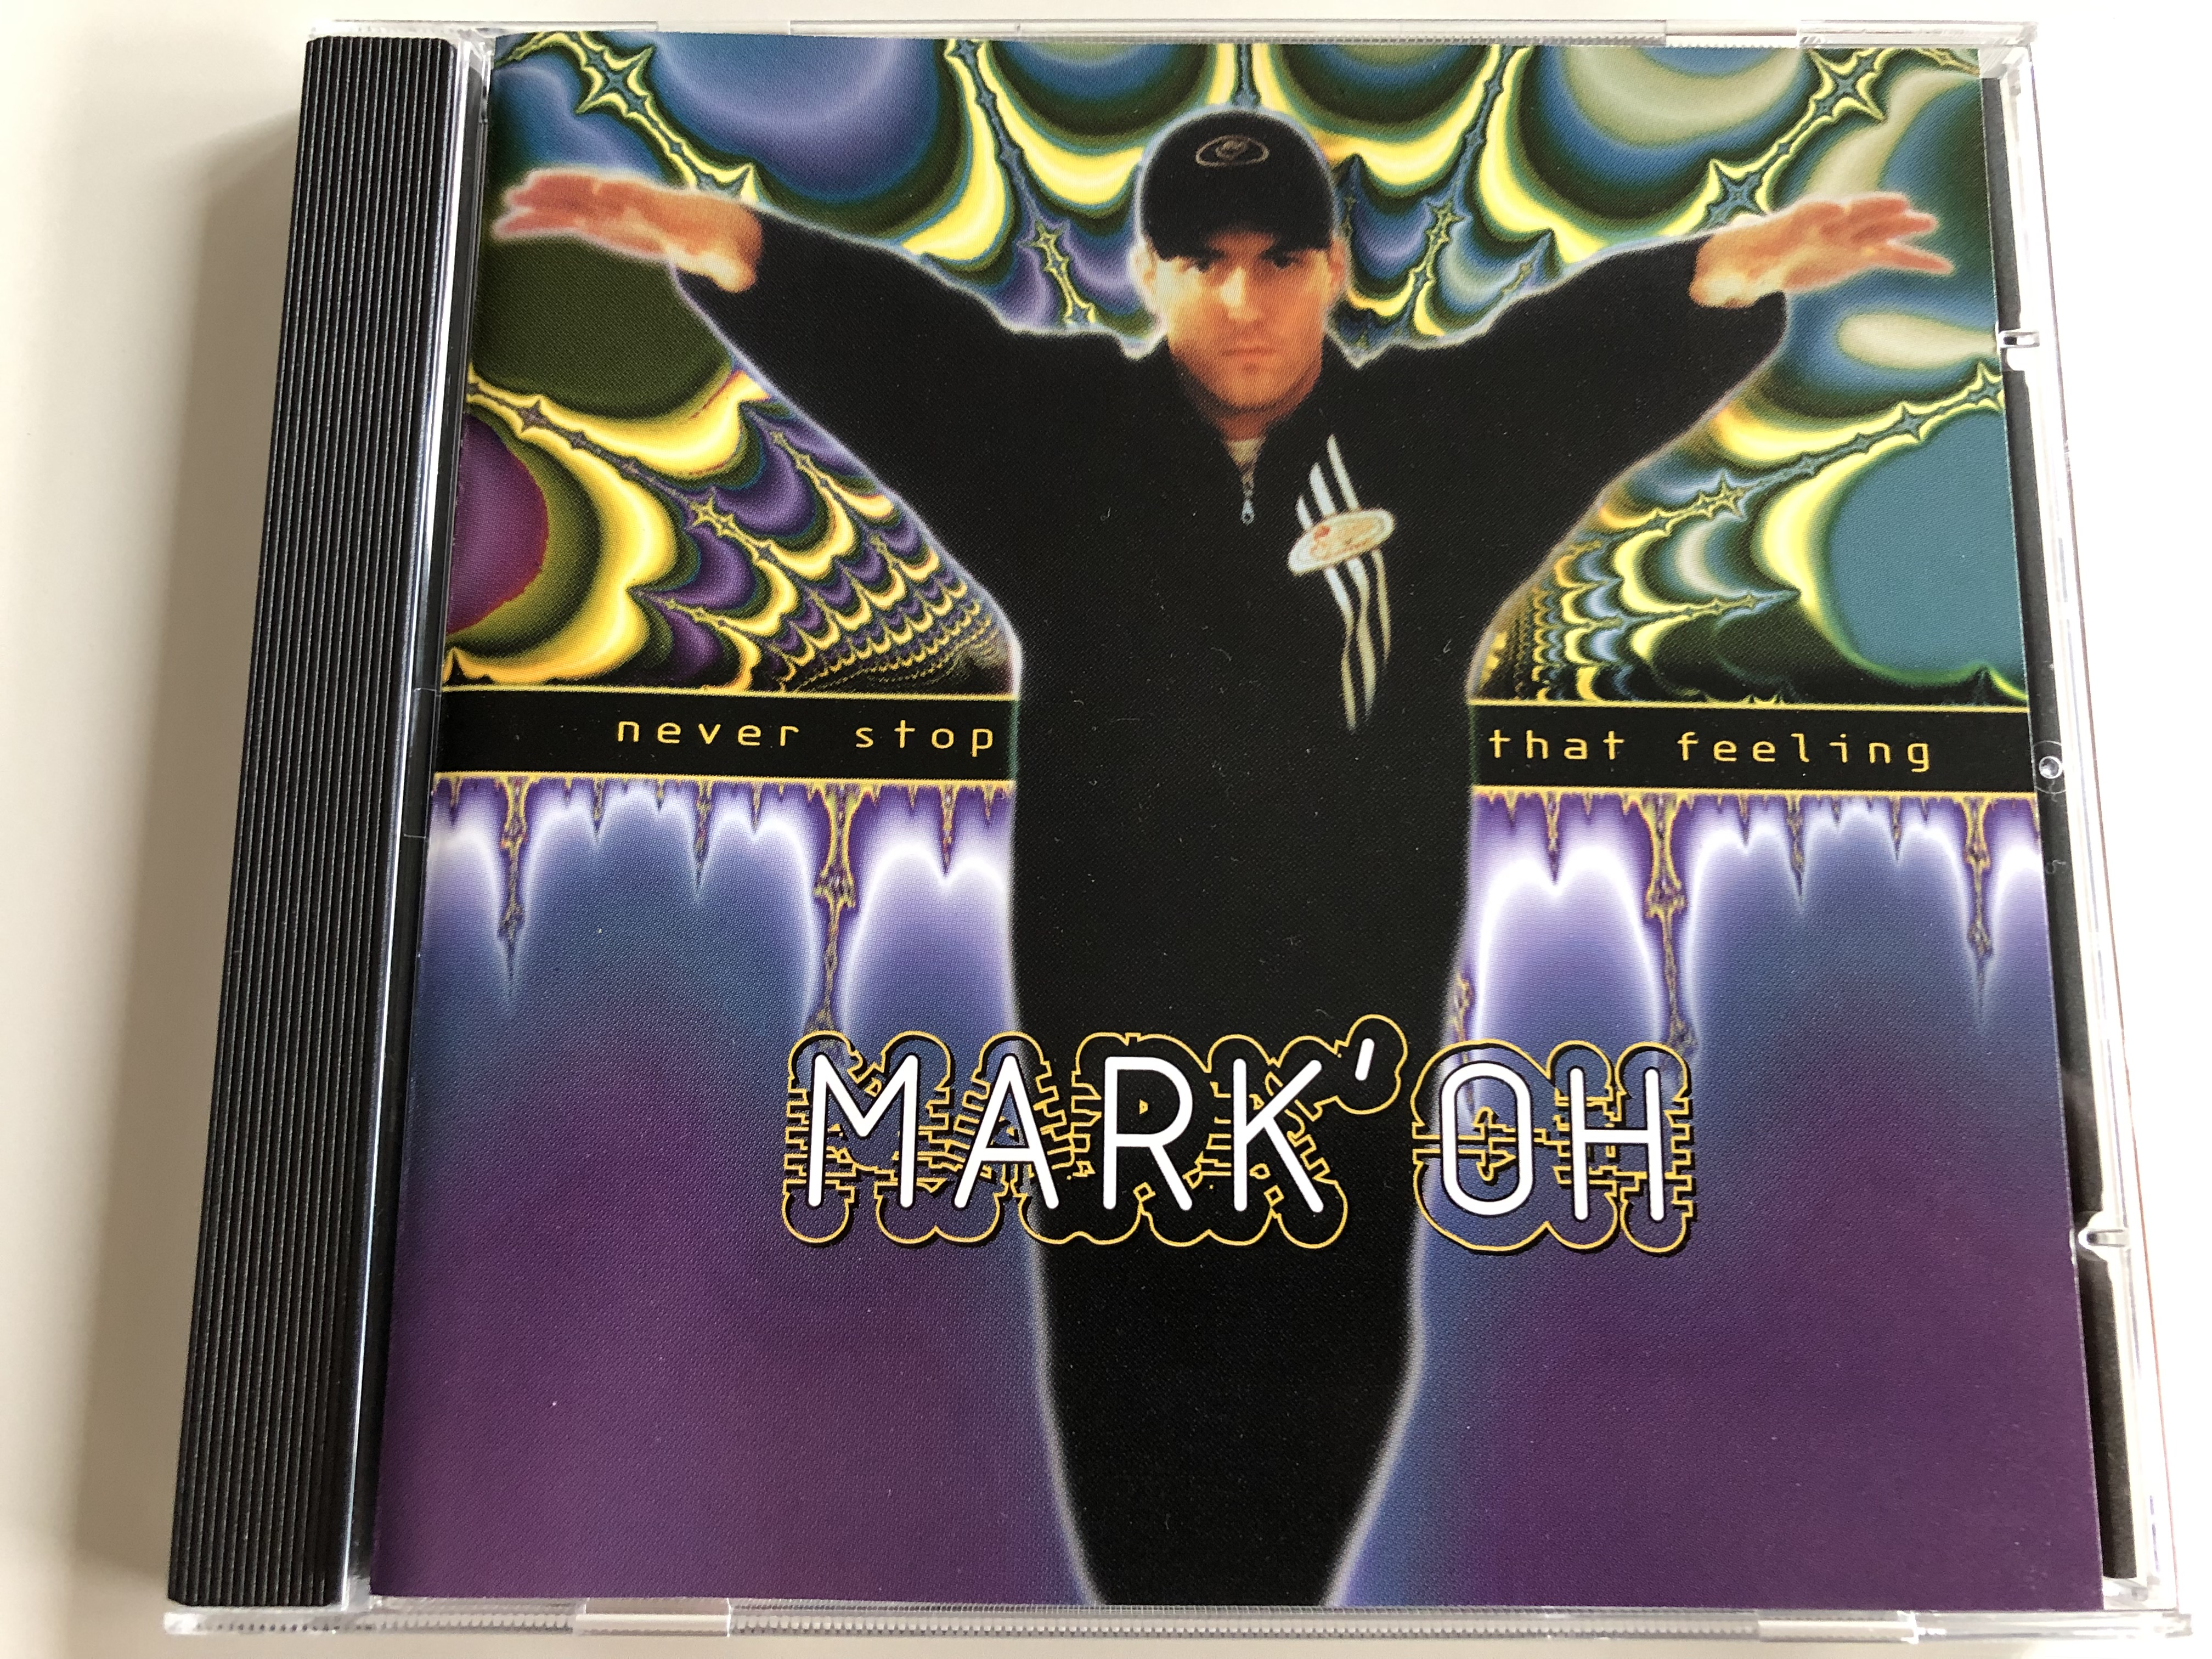 mark-oh-never-stop-that-feeling-peace-records-audio-cd-1995-527-127-2-1-.jpg